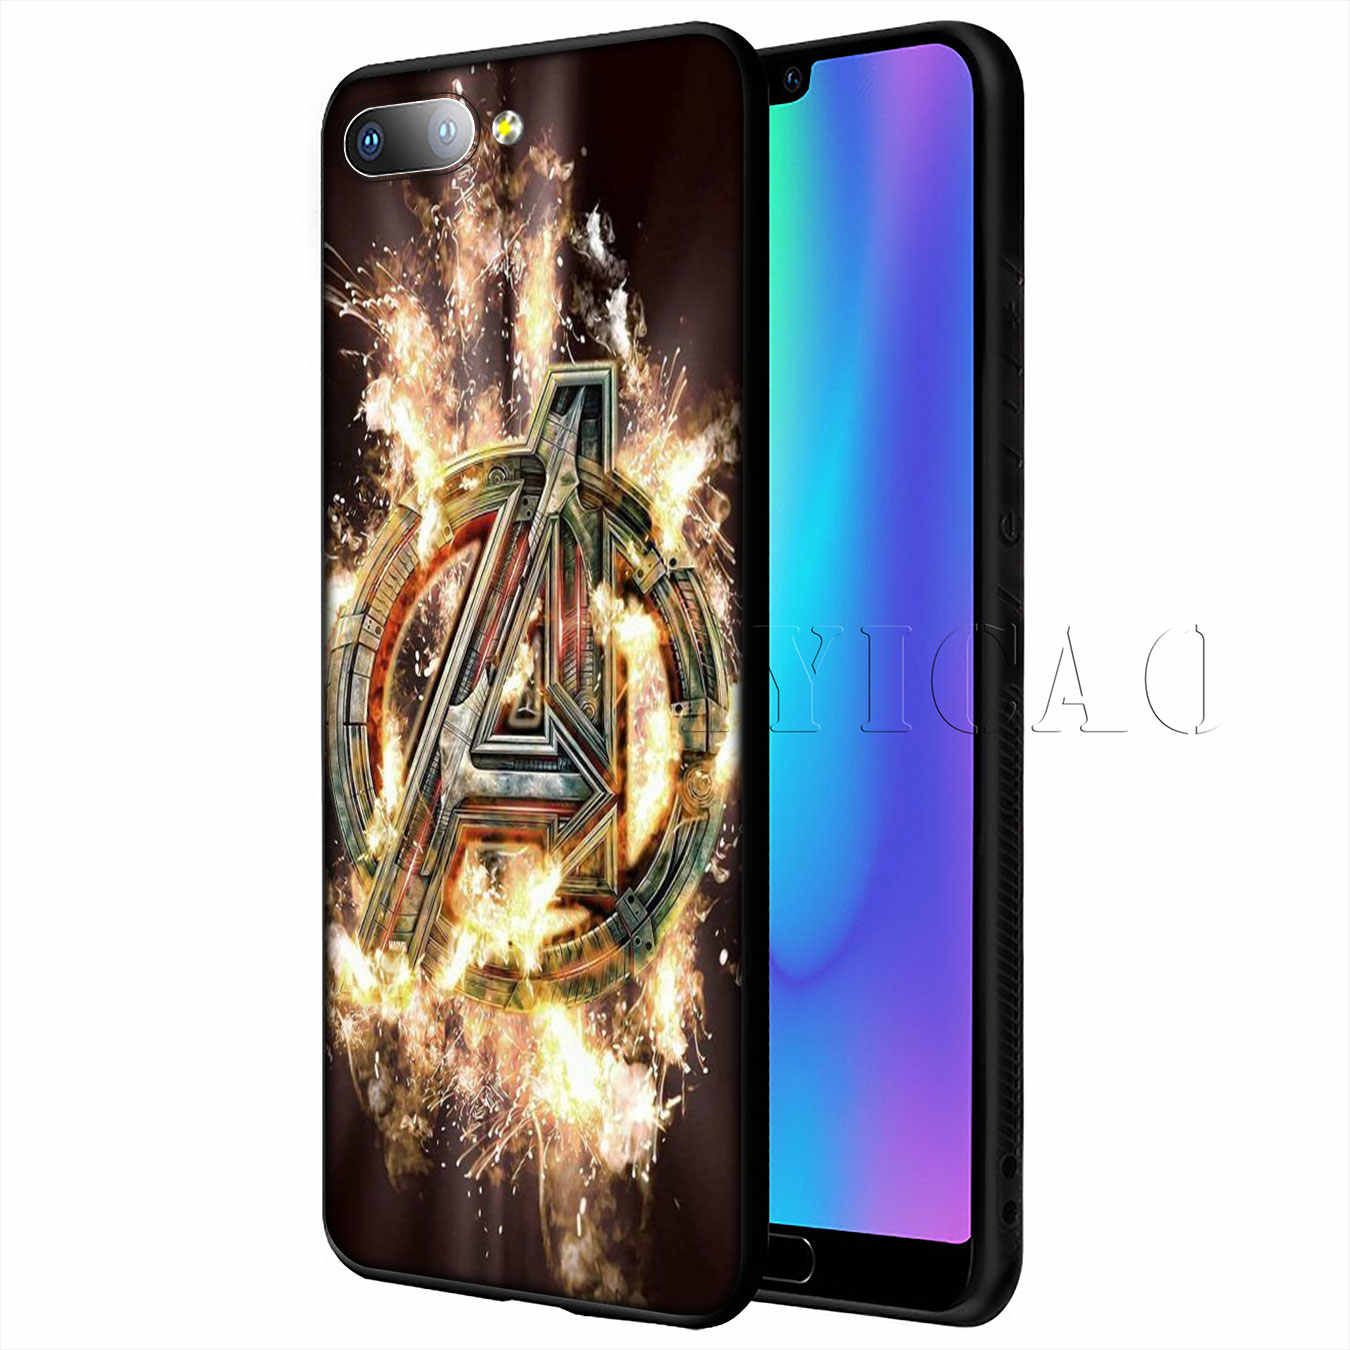 IYICAO MARVEL The Avengers Soft Case for Huawei P20 Pro P10 P8 P9 P30 Lite Mini 2017 P Smart 2019 Cover